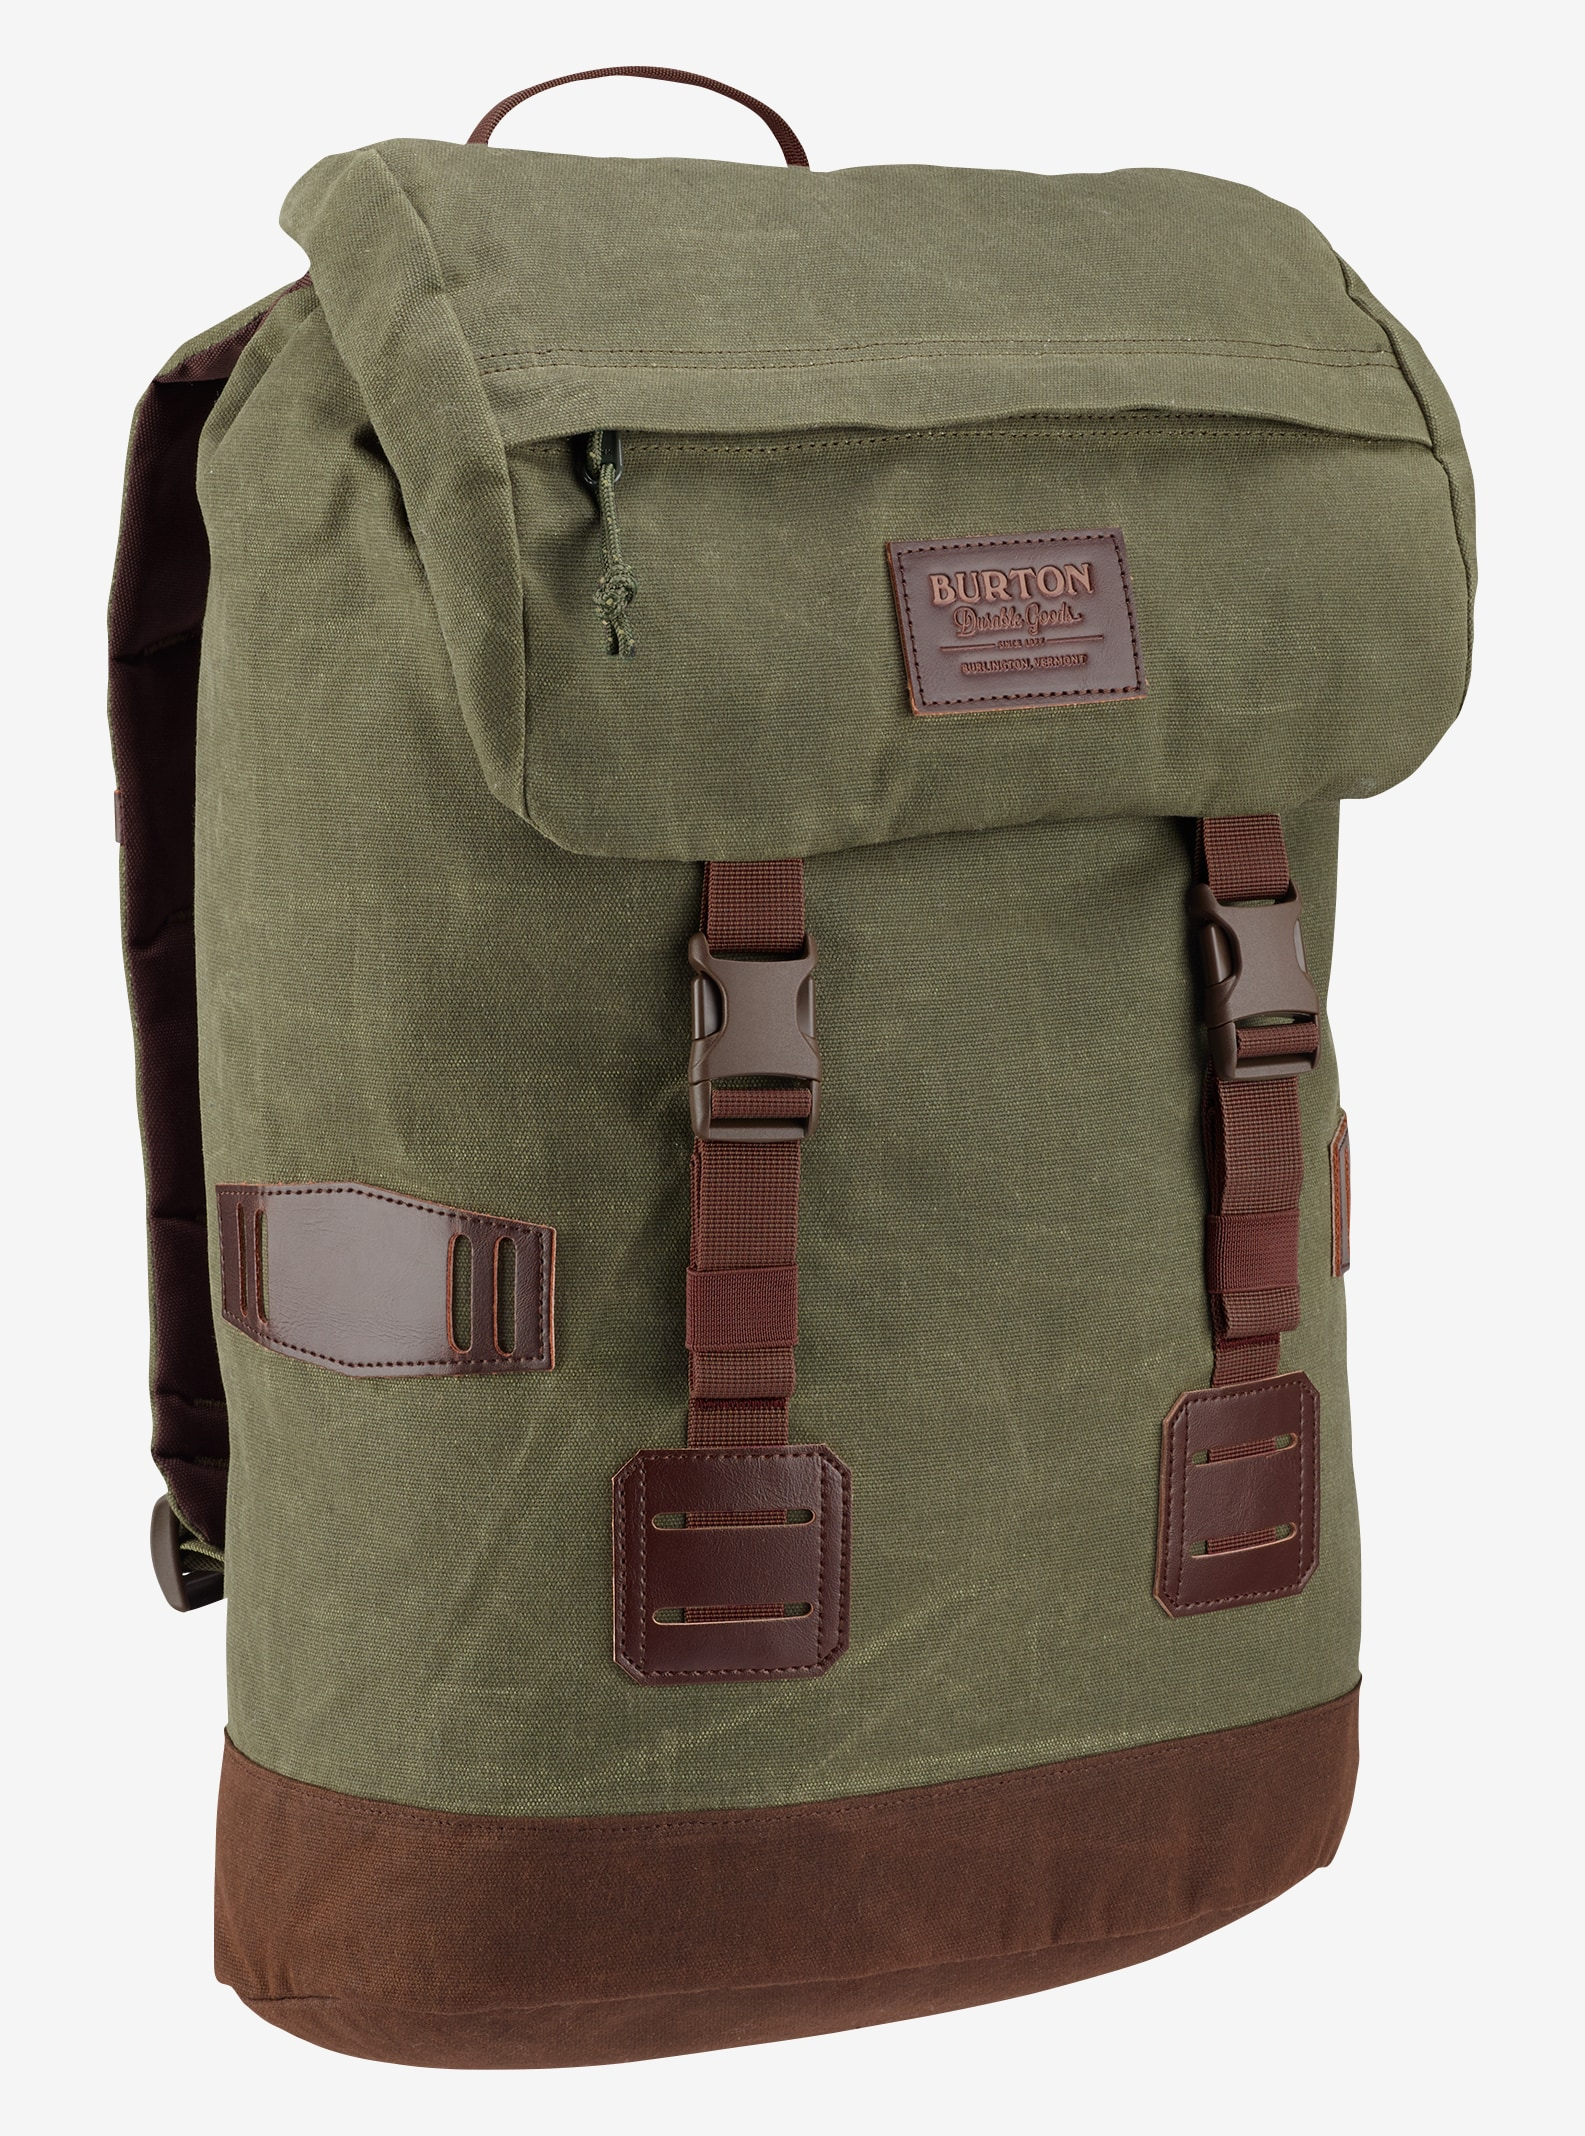 Burton - Sac à dos Tinder affichage en Forest Night Waxed Canvas